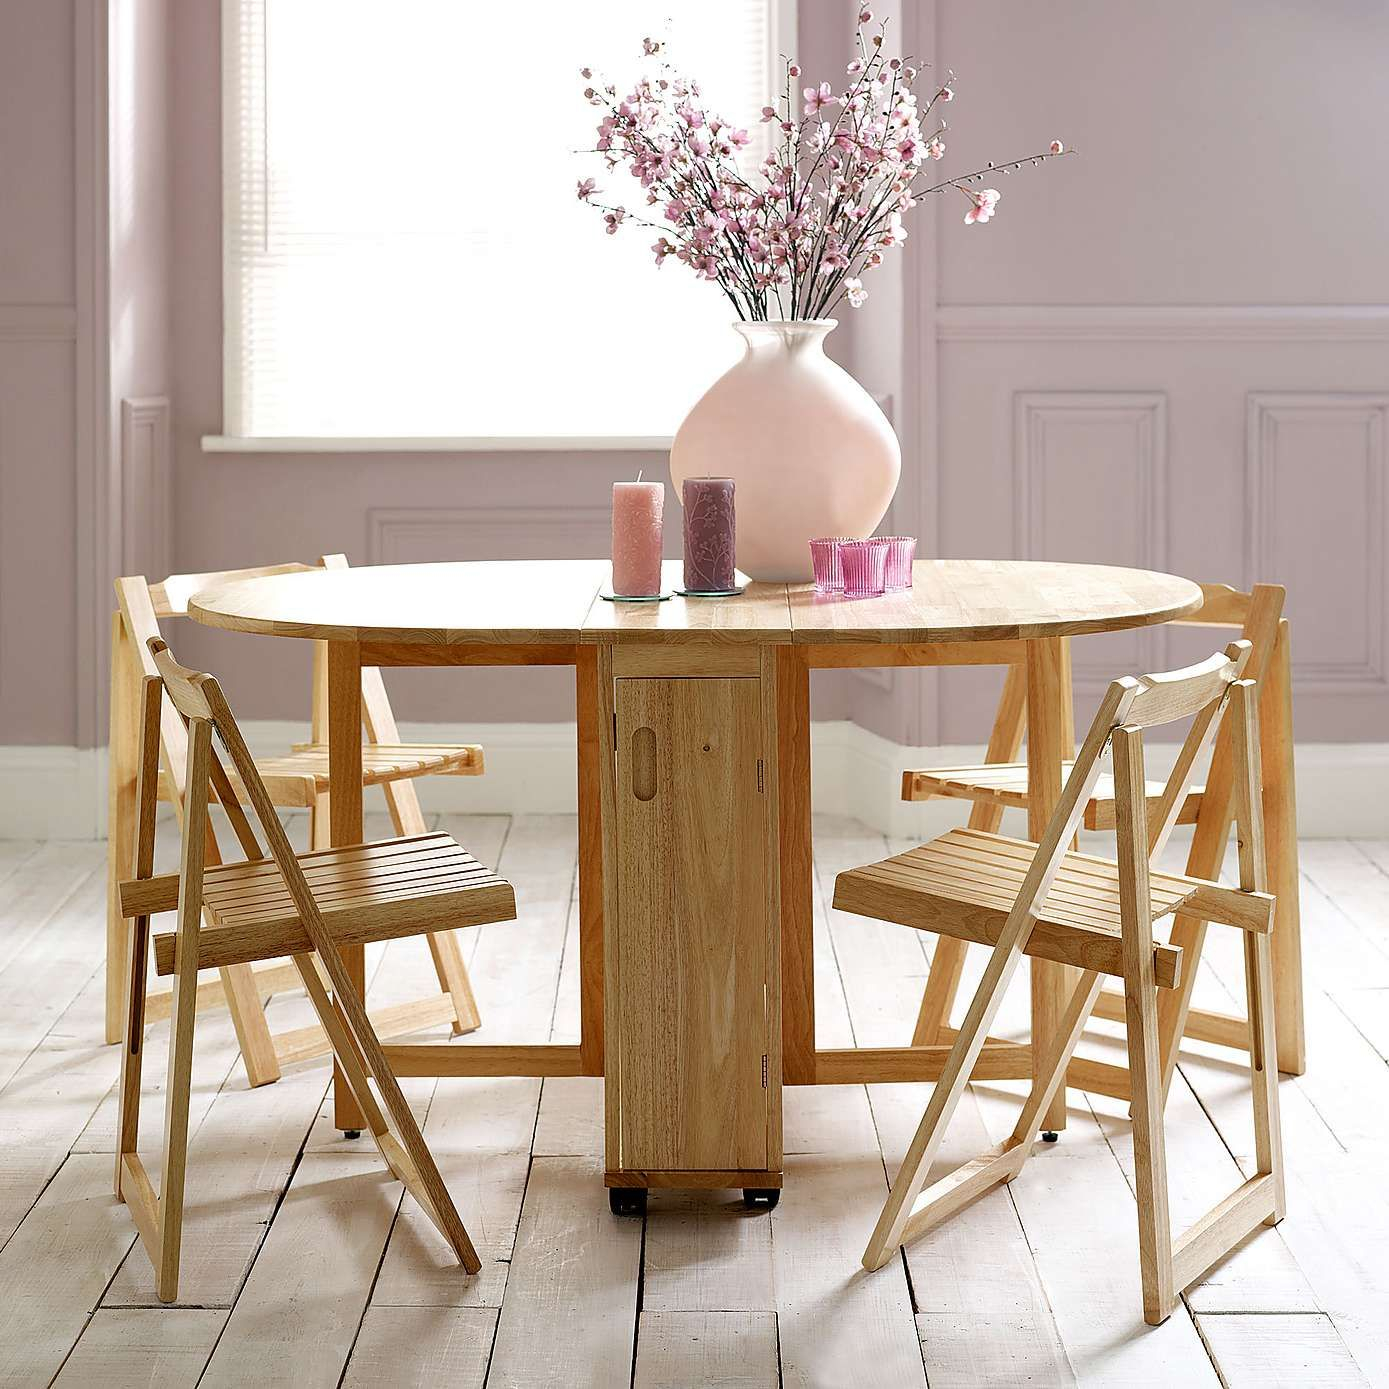 Rubberwood Butterfly Table With 4 Chairs Dunelm Small within dimensions 1389 X 1389